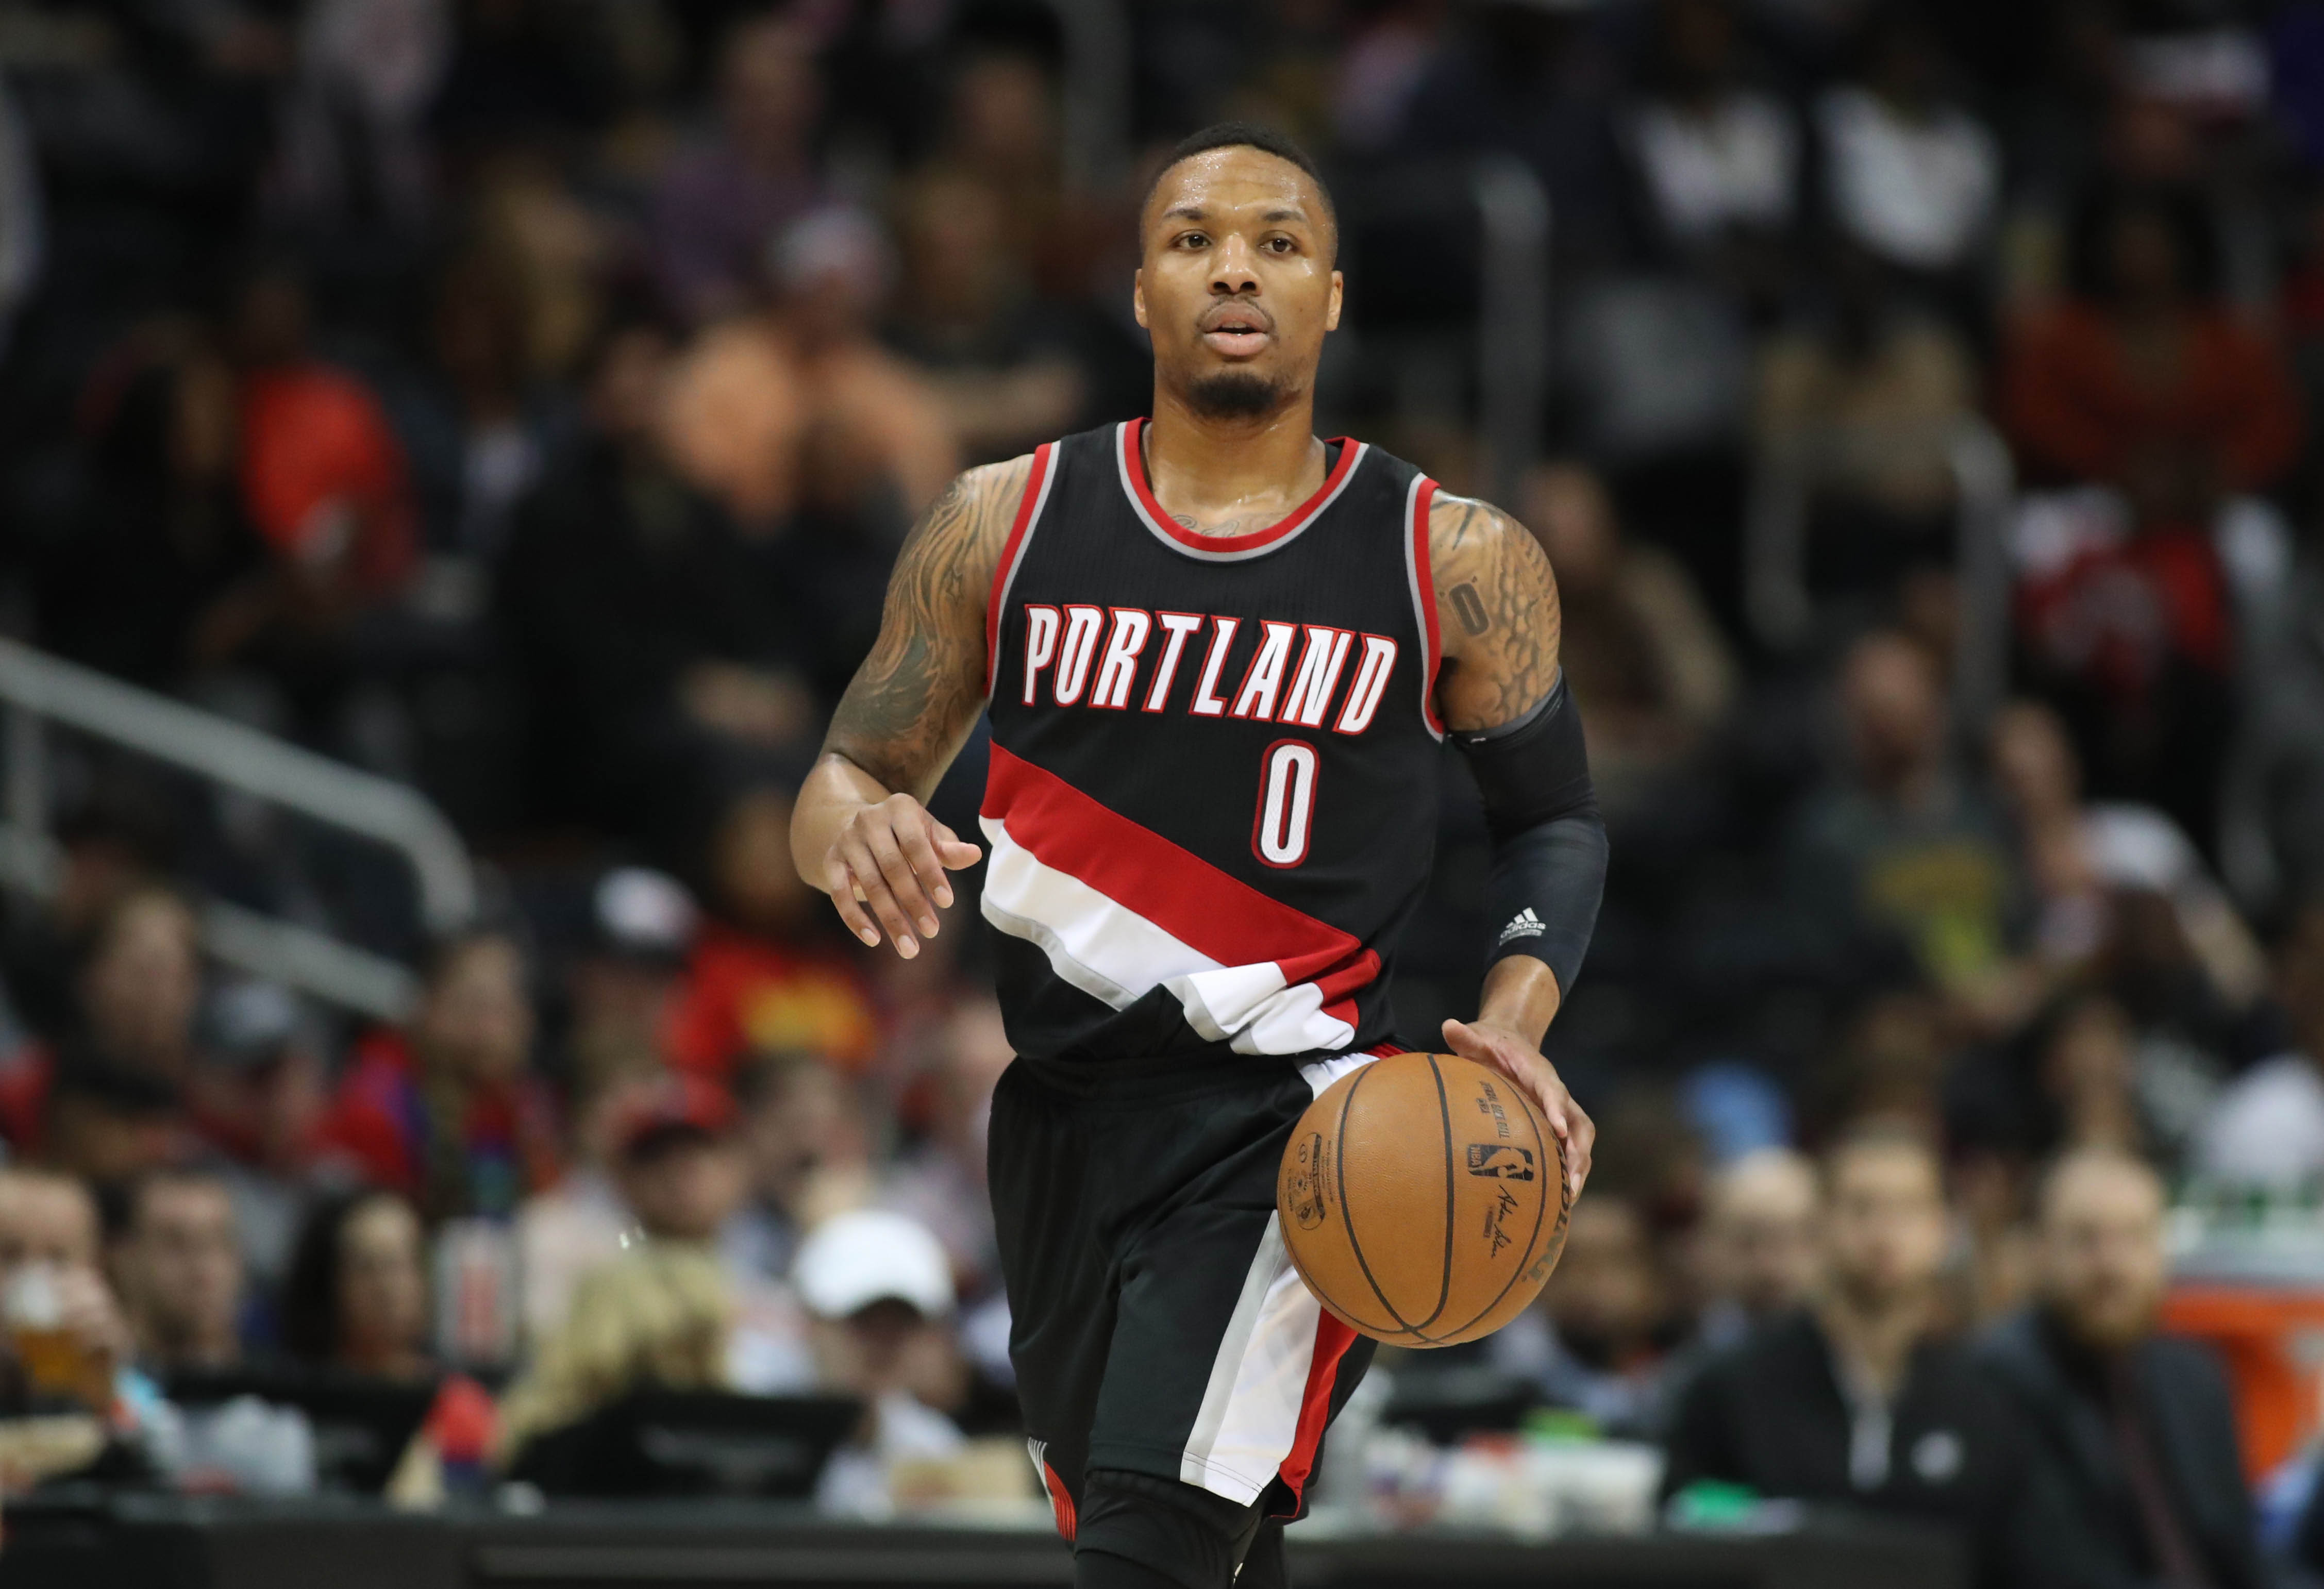 Damian Lillard The Portland Trail Blazers s High Powered Engine